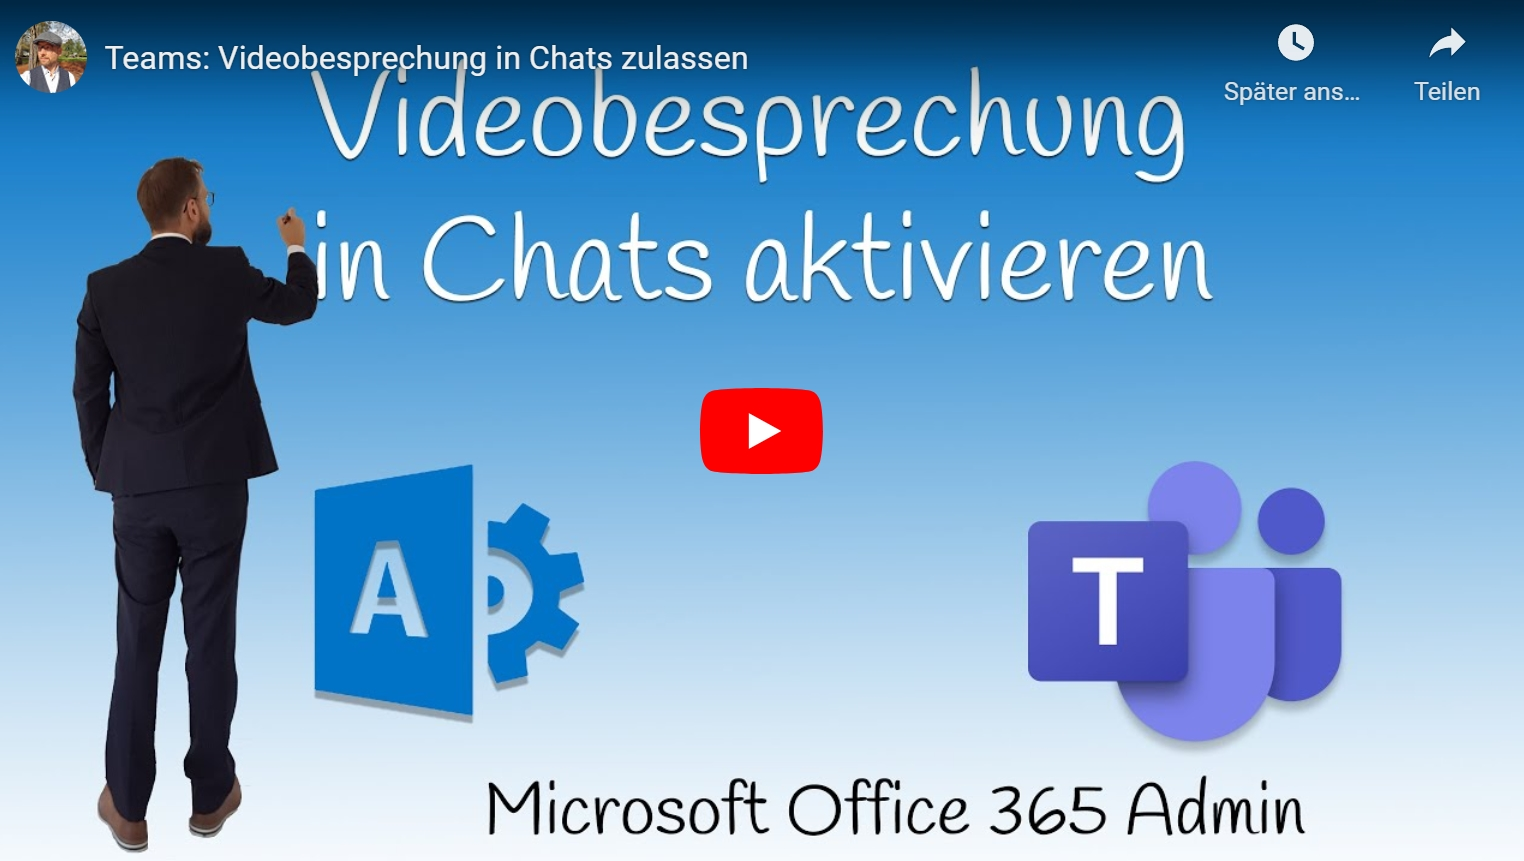 Videobesprechung in Chats